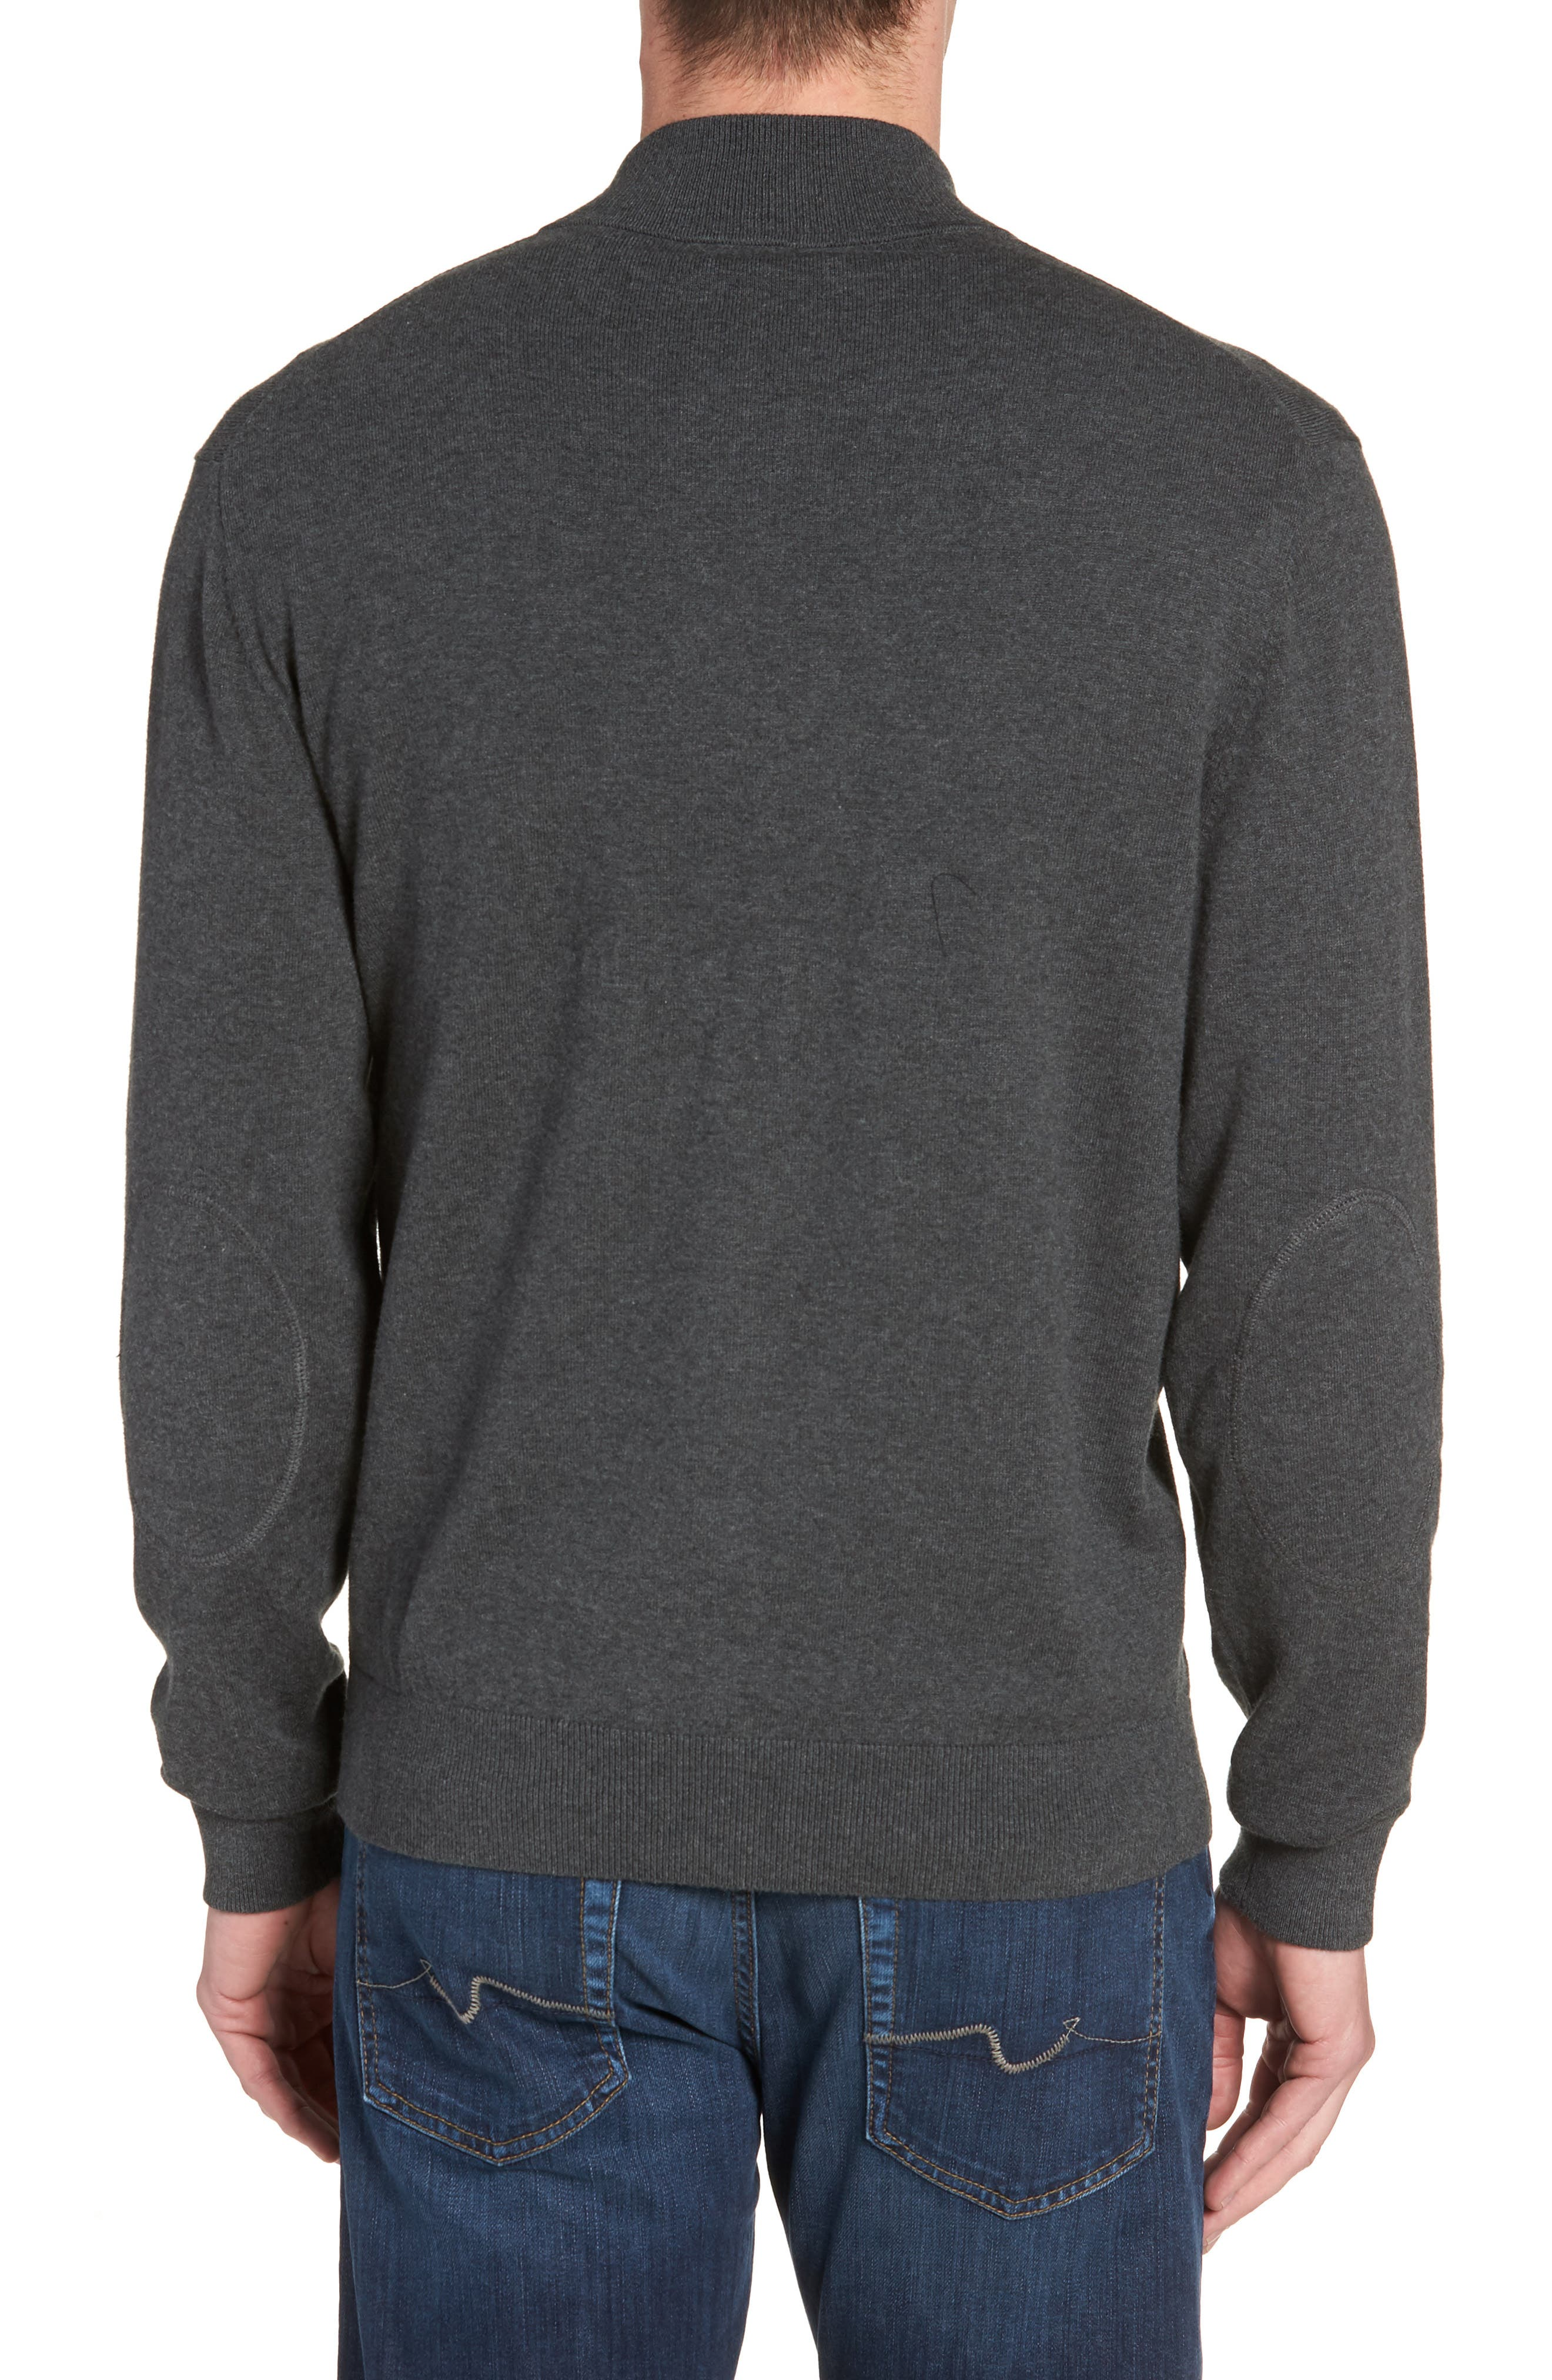 Tampa Bay Buccaneers - Lakemont Regular Fit Quarter Zip Sweater,                             Alternate thumbnail 2, color,                             CHARCOAL HEATHER